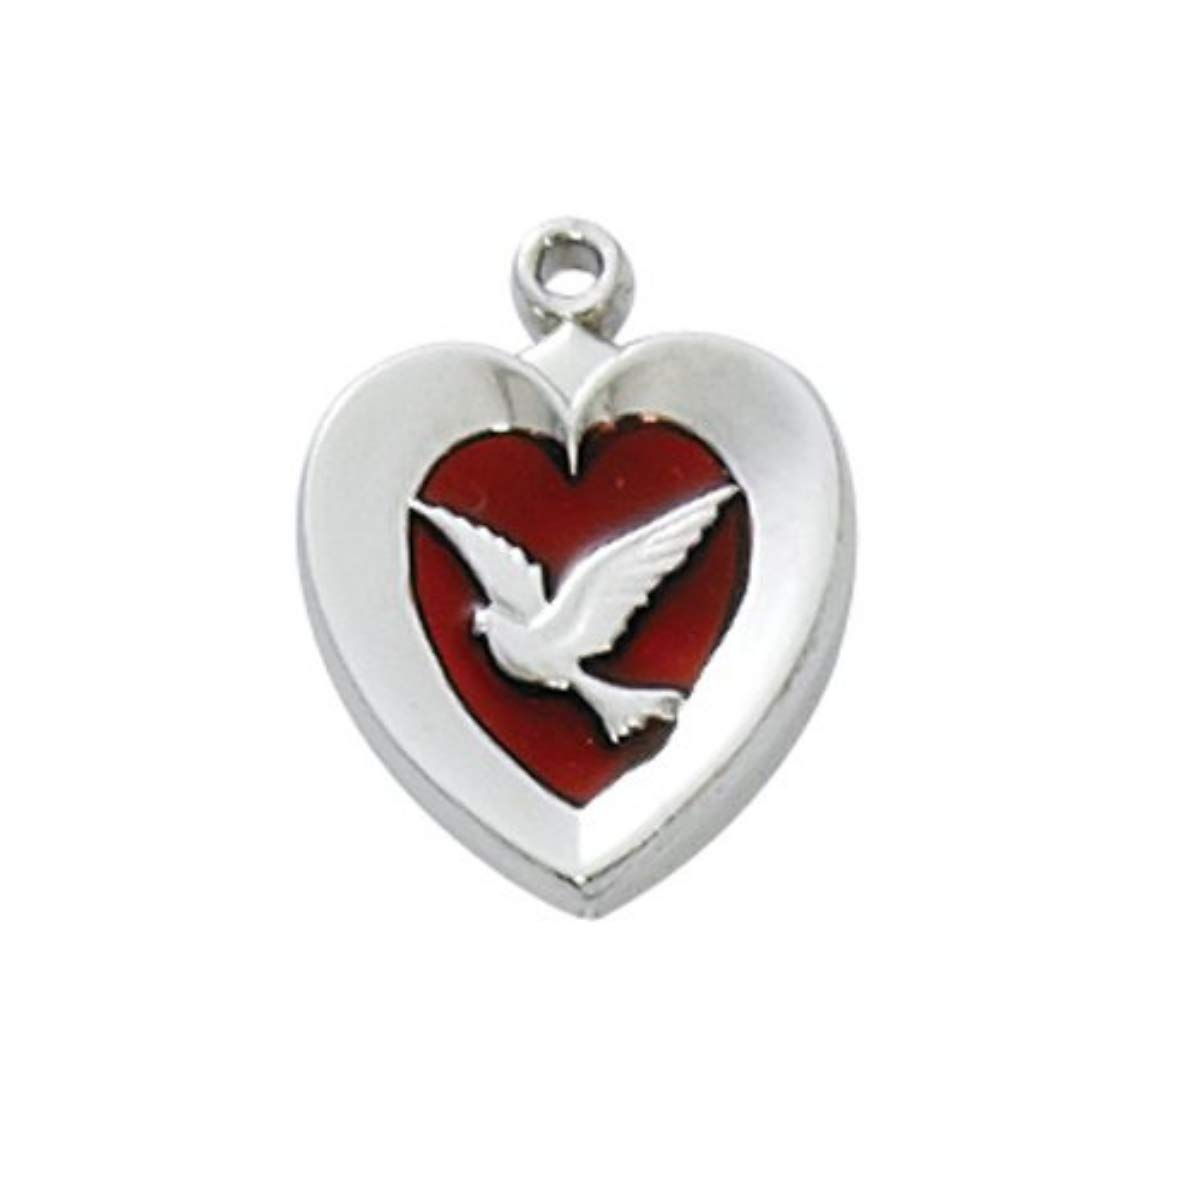 McVan Silver Tone 1//2-inch Holy Dove Heart Shaped Red Enameled Pendant